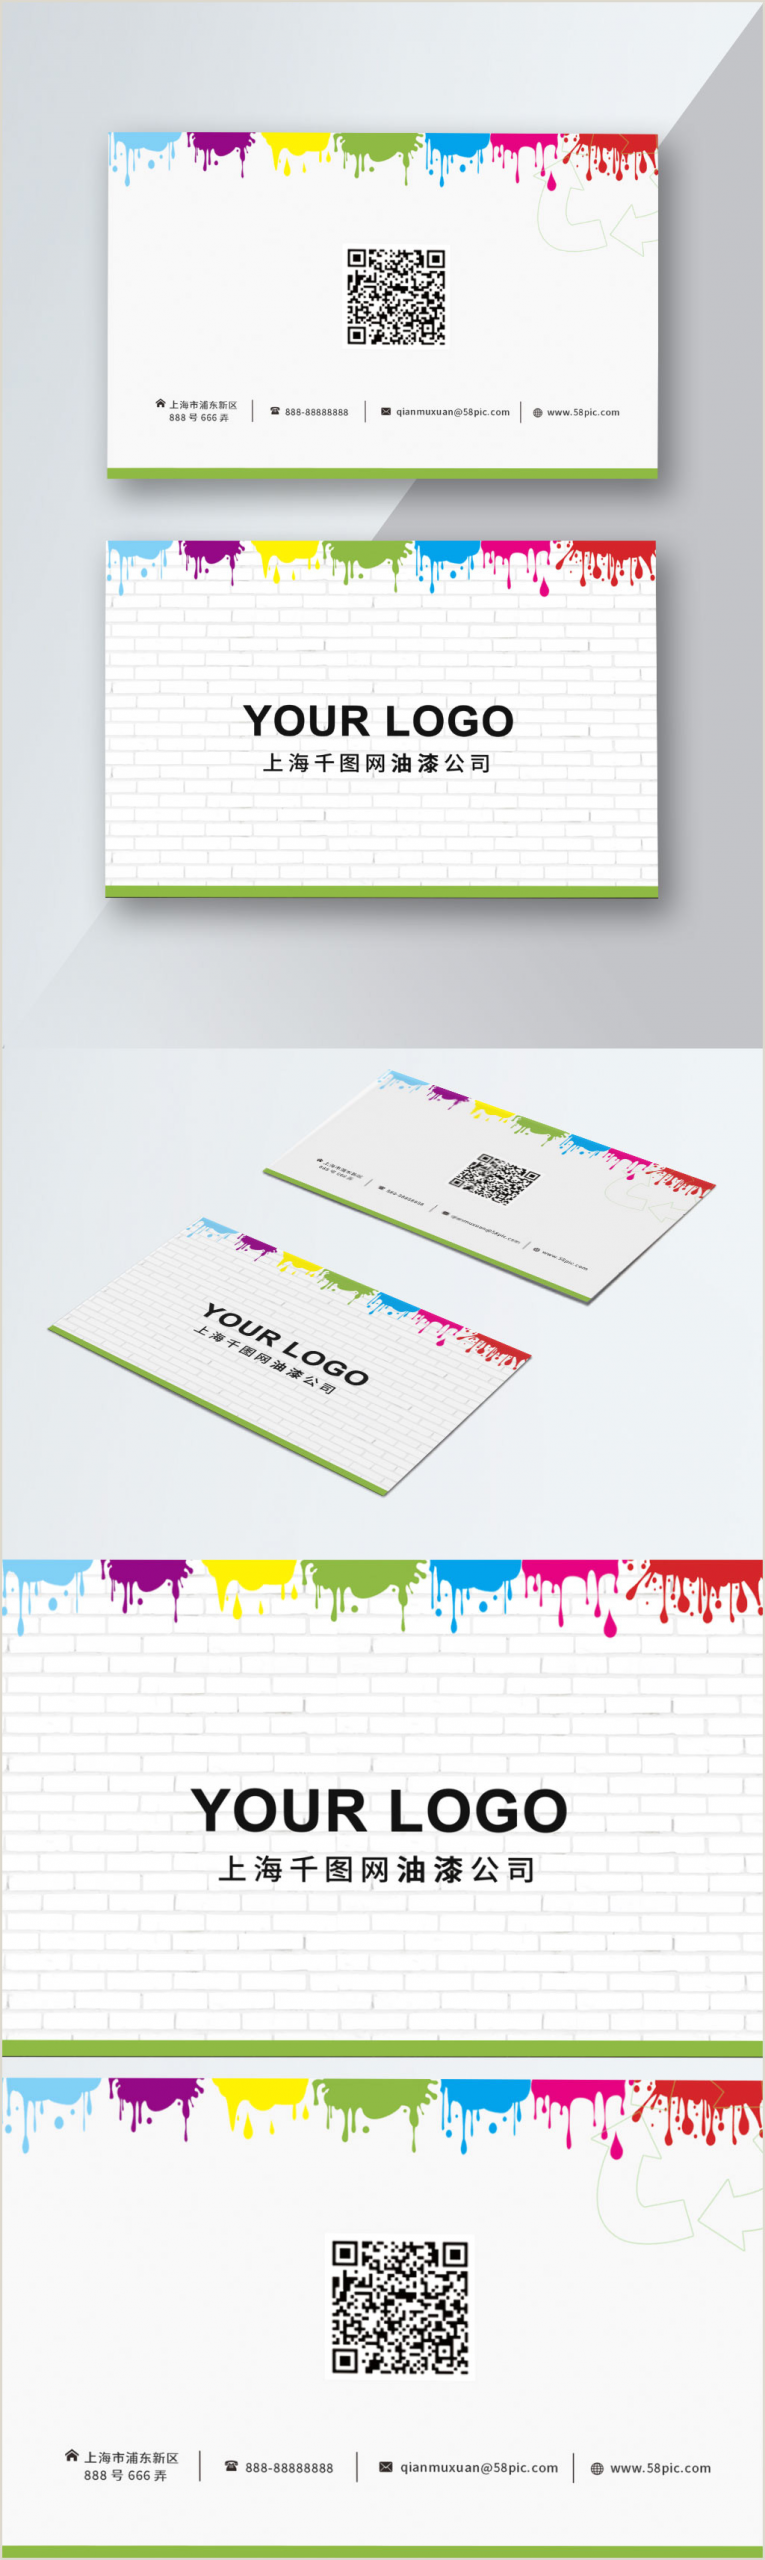 Painting Logos For Business Cards Paint Business Card Picture Paint Template Image Picture